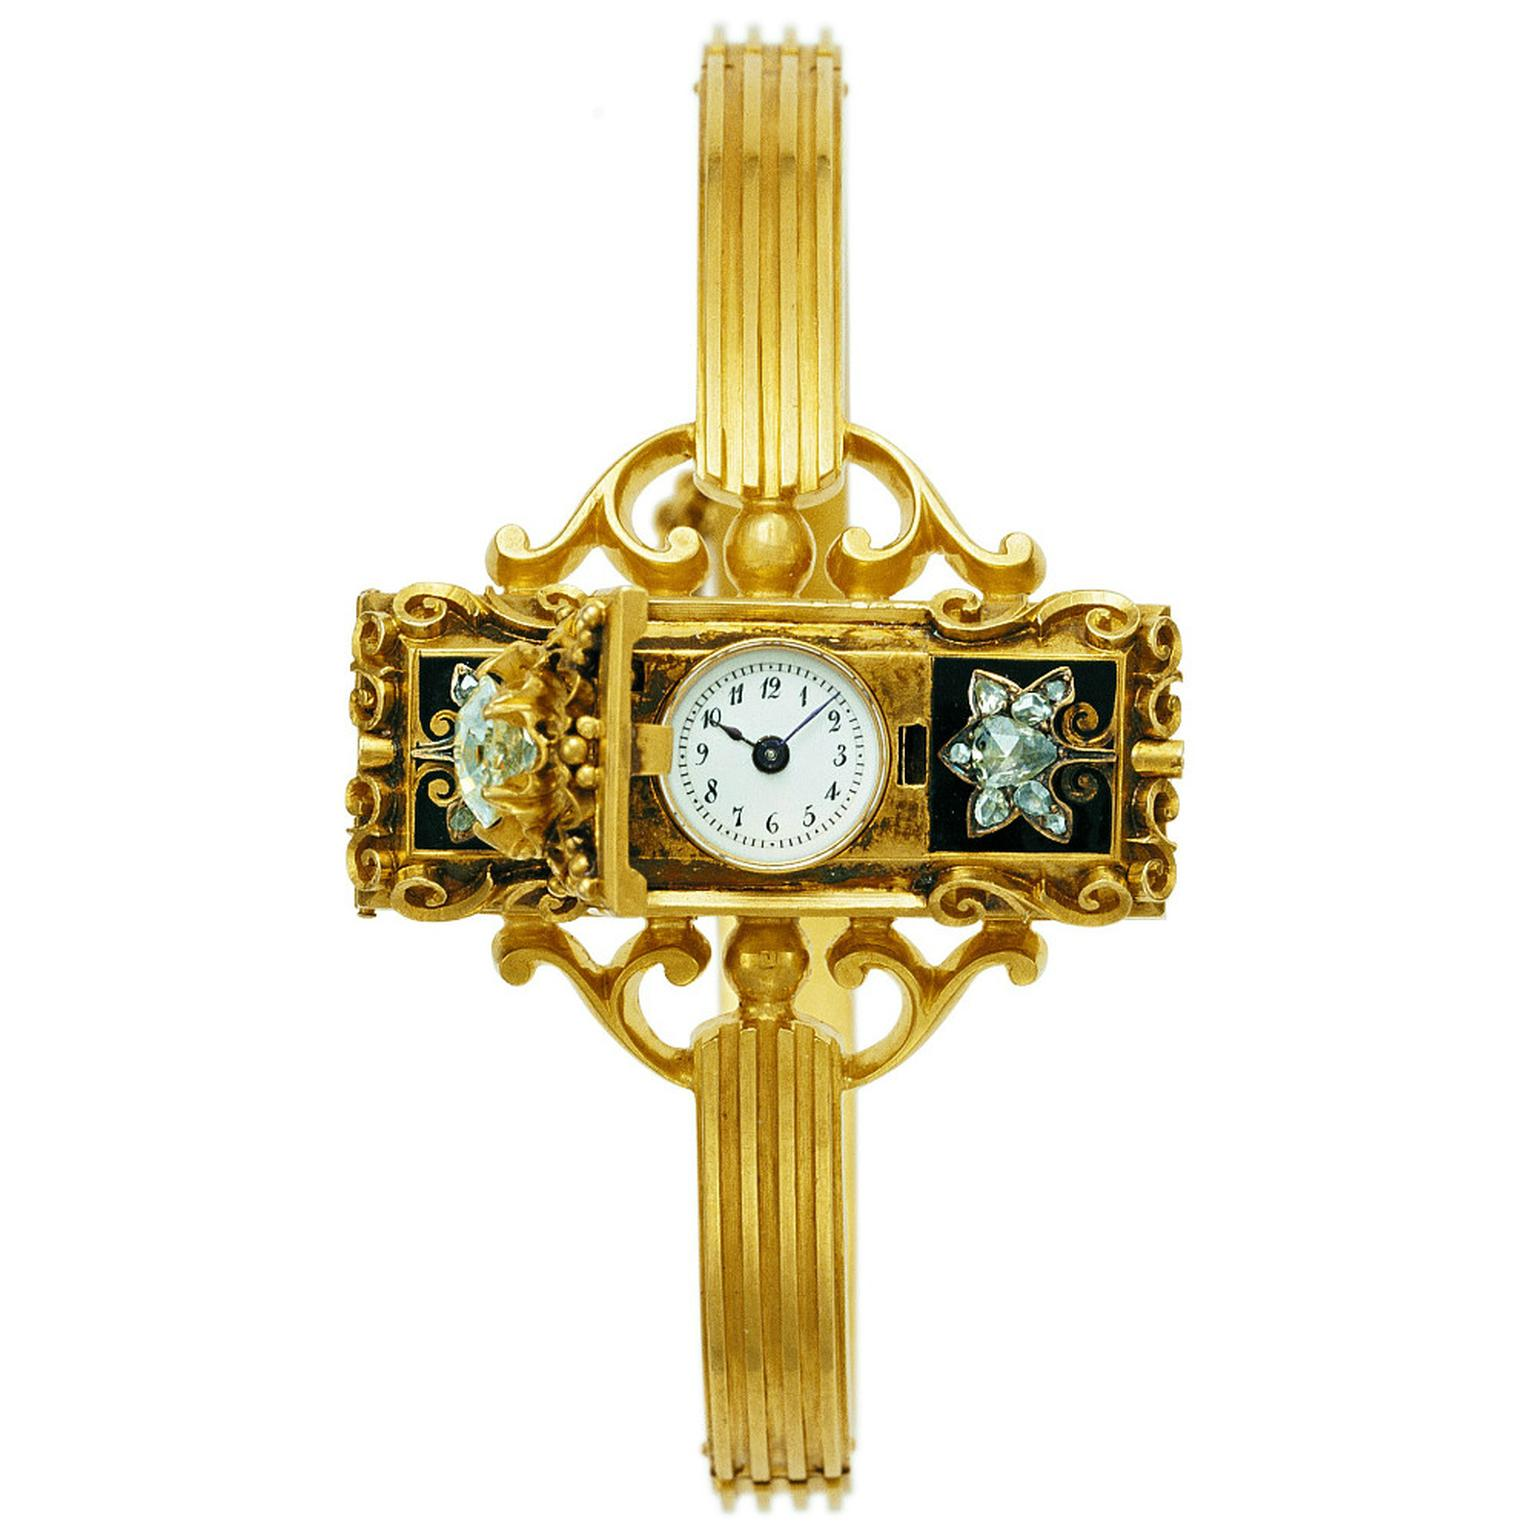 Patek 1868 first women's wristwatch